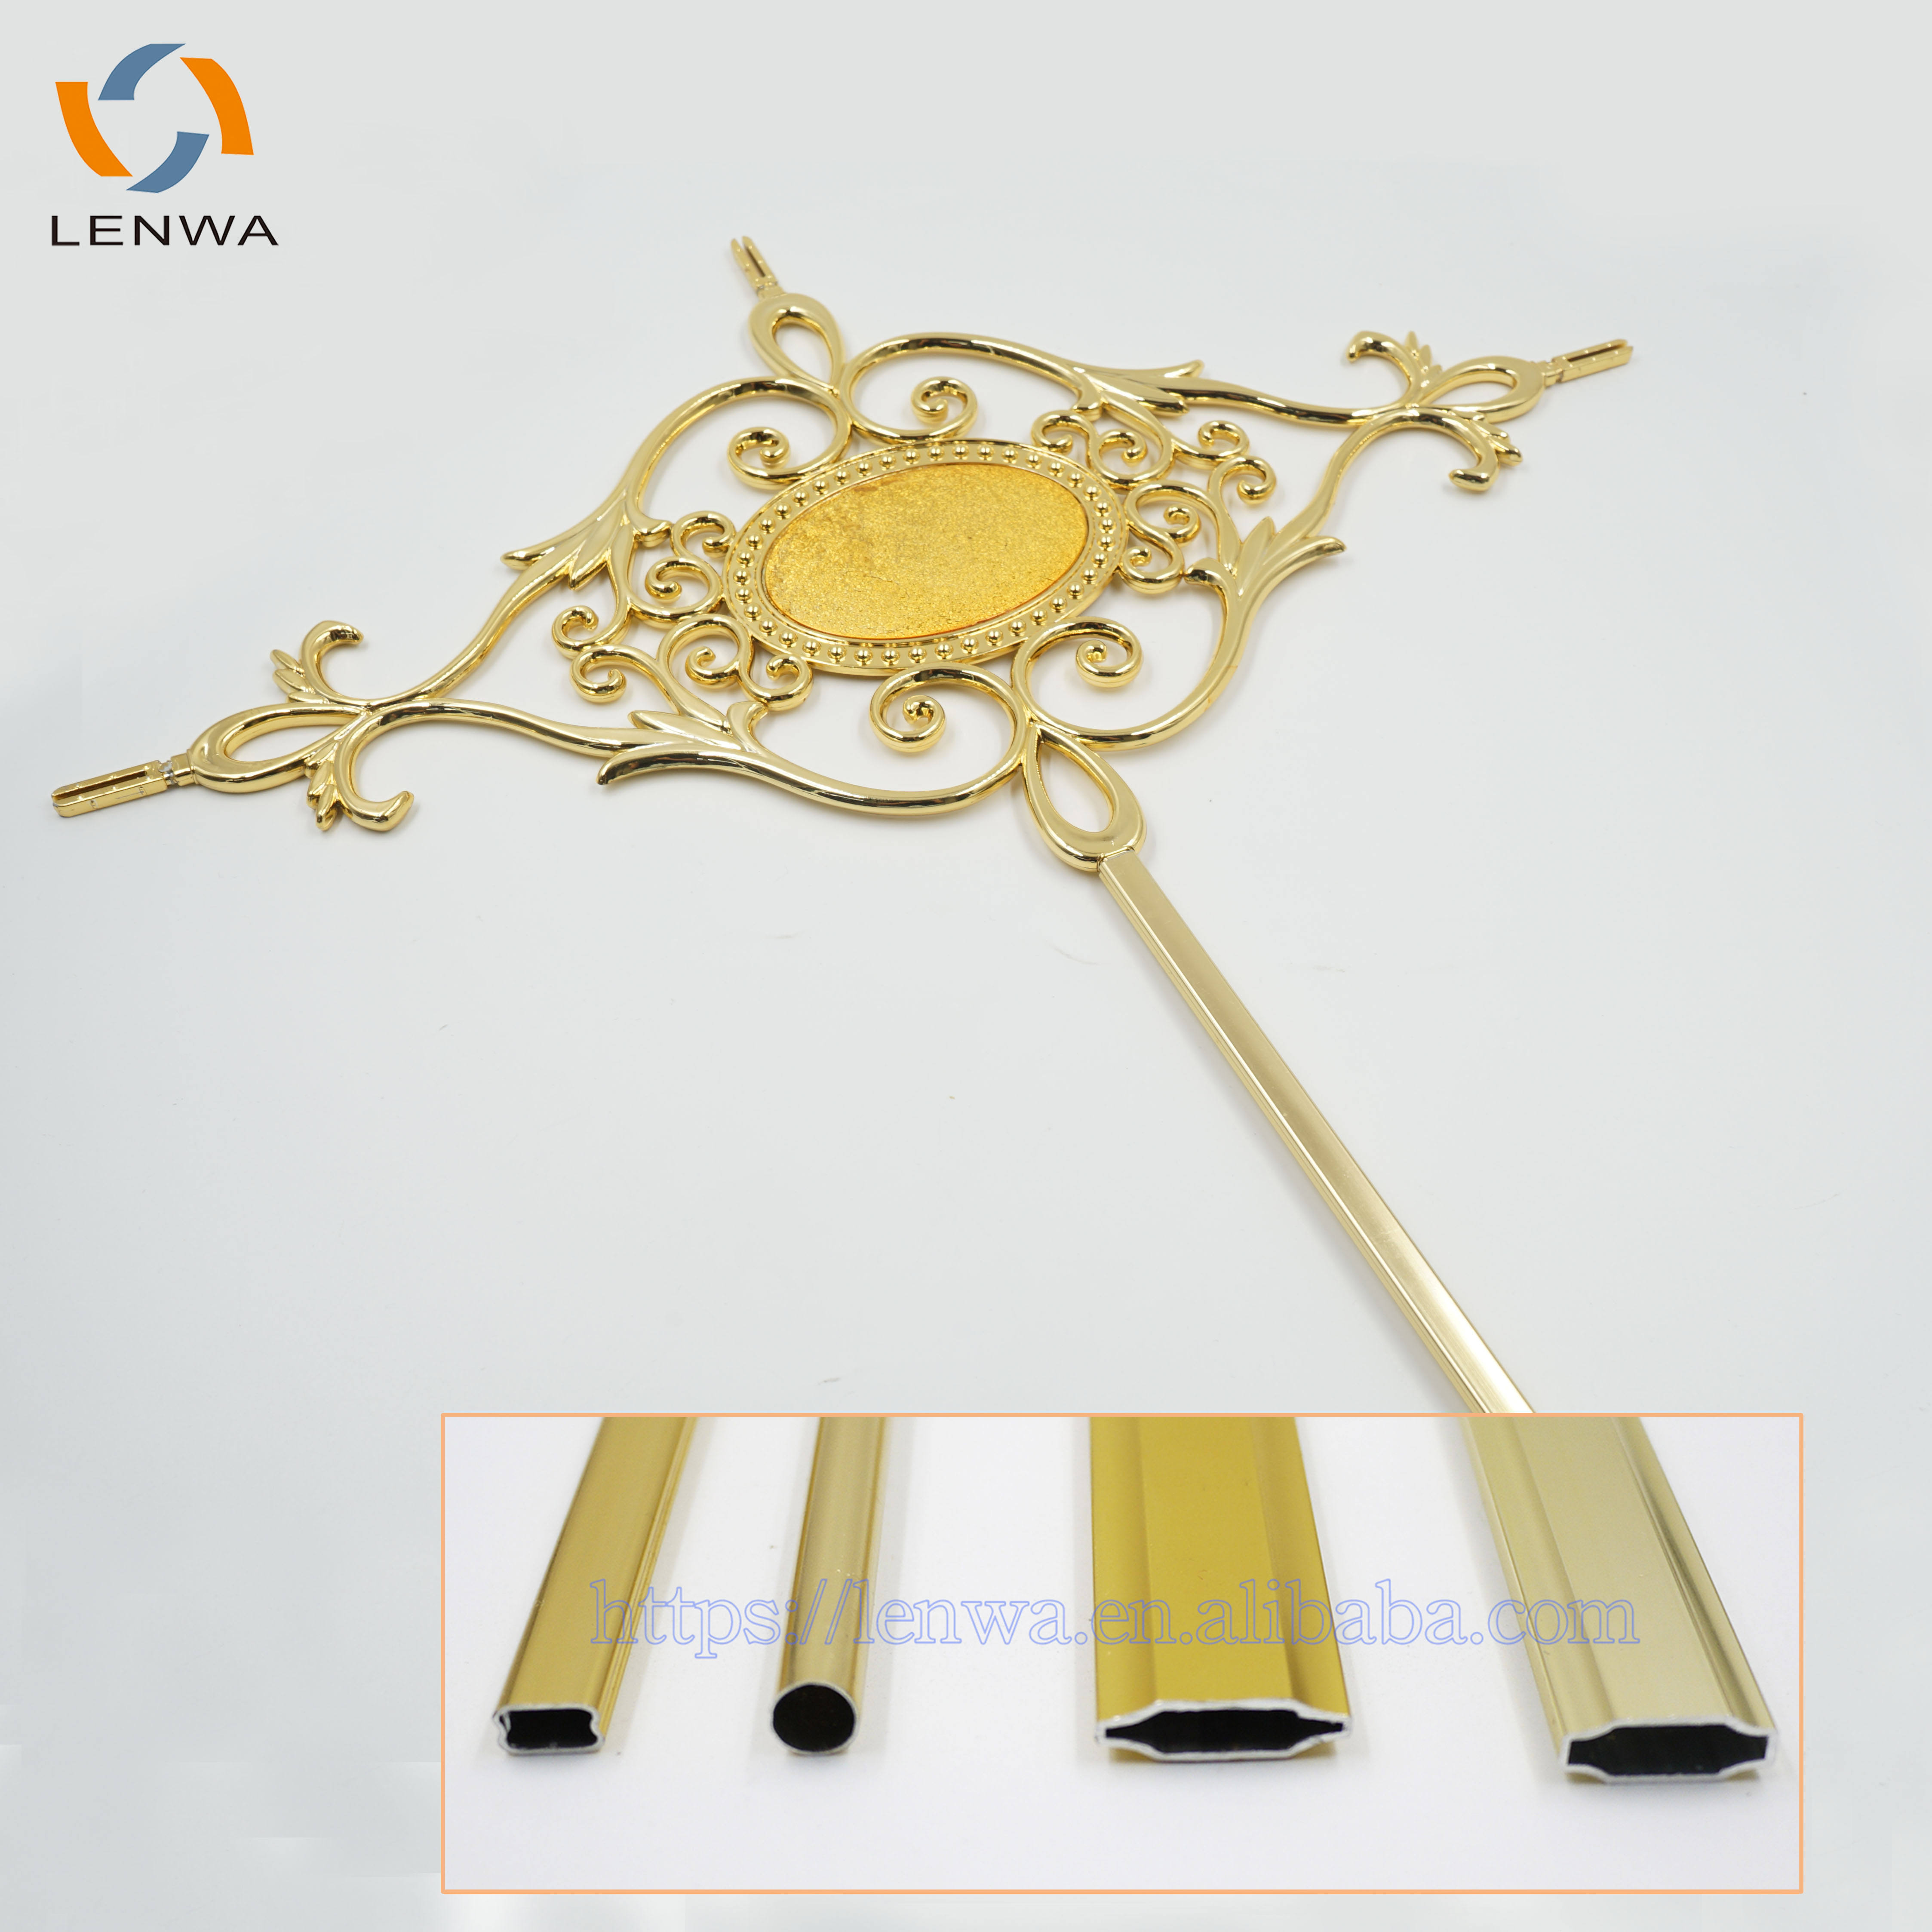 LENWA Aluminium Factory georgian bar flower for double glazing window accessories spacer bars